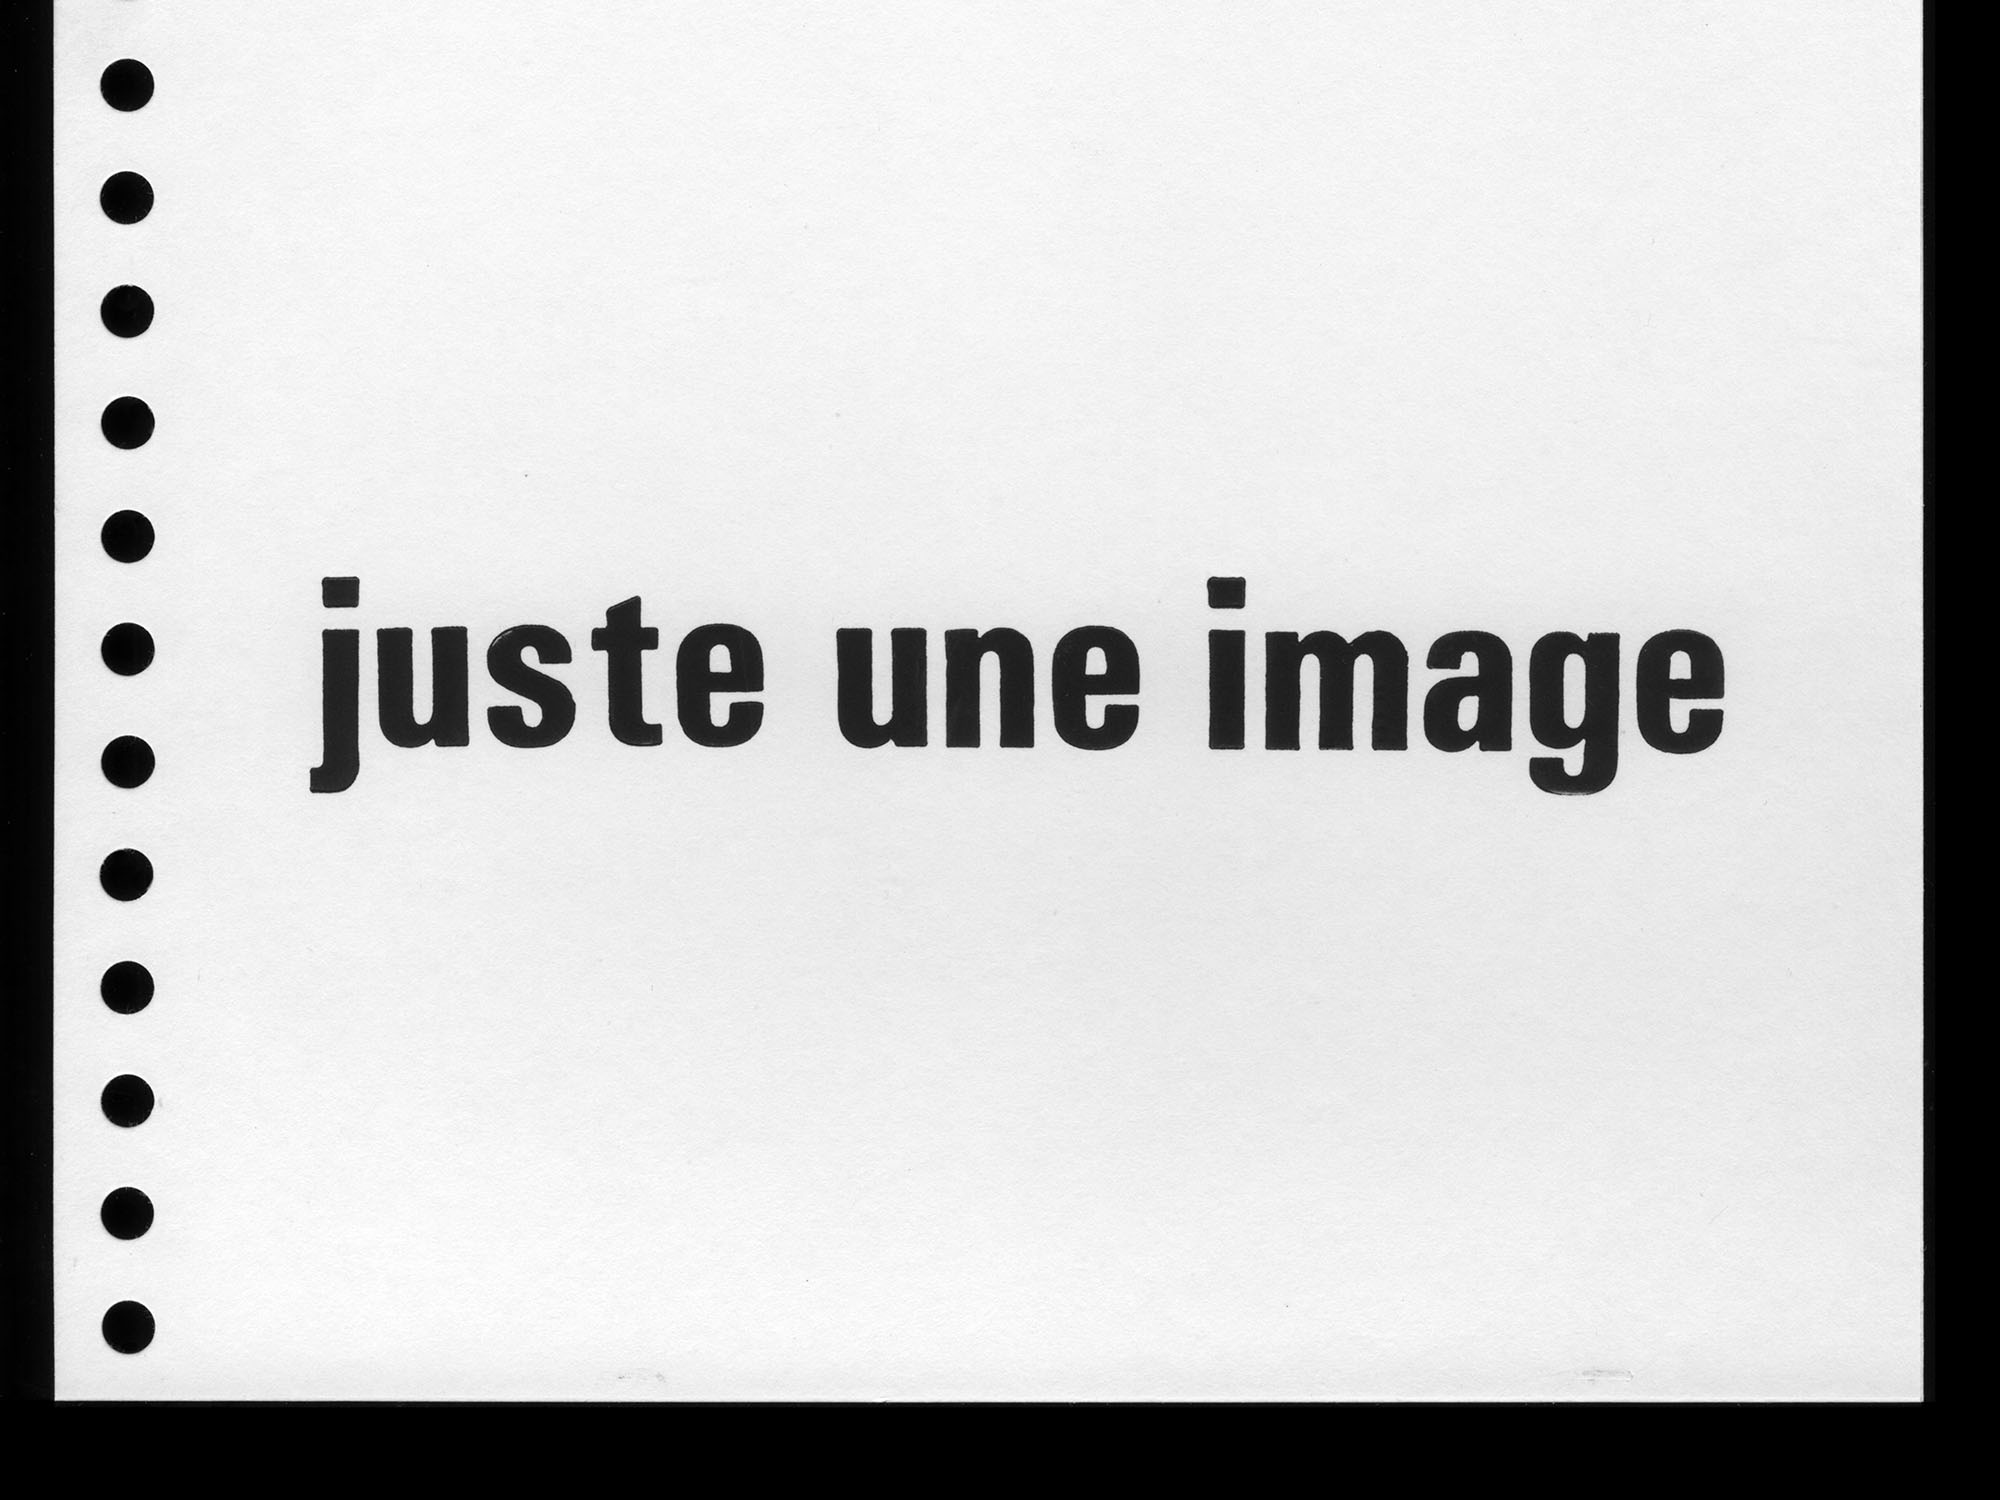 juste-scan-texte-2000